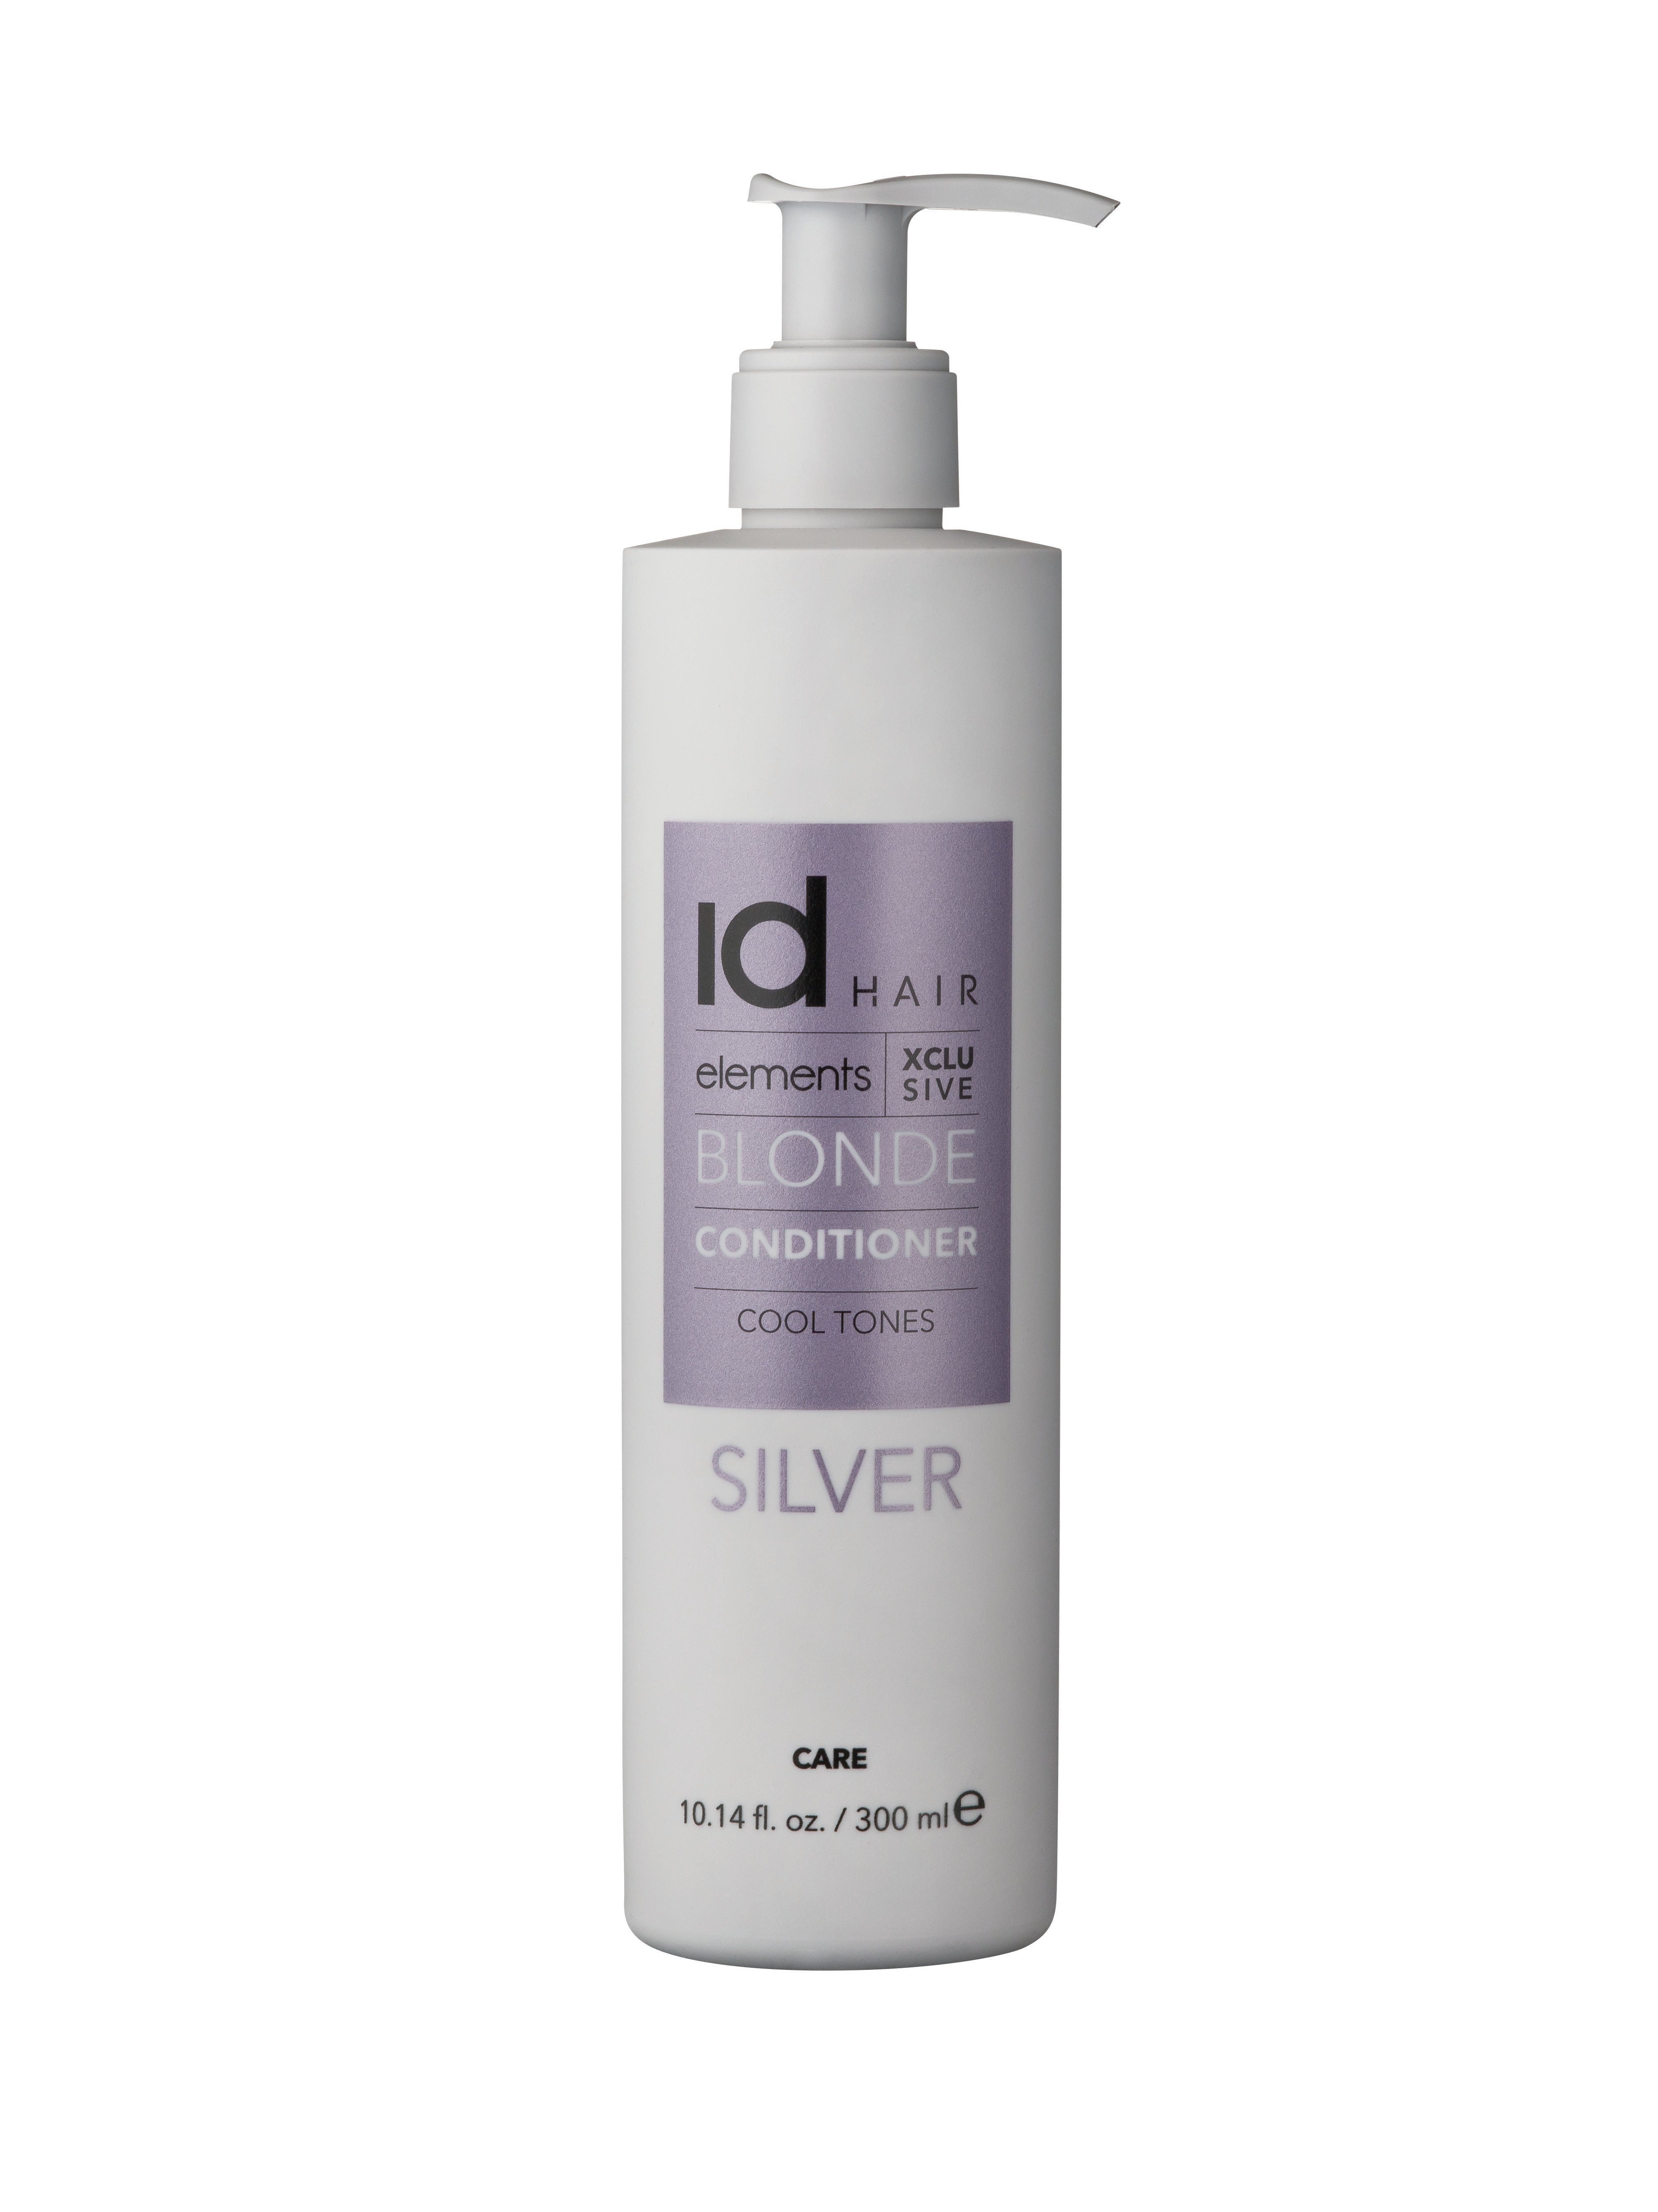 IdHAIR - Elements Xclusive Silver Conditioner 300 ml